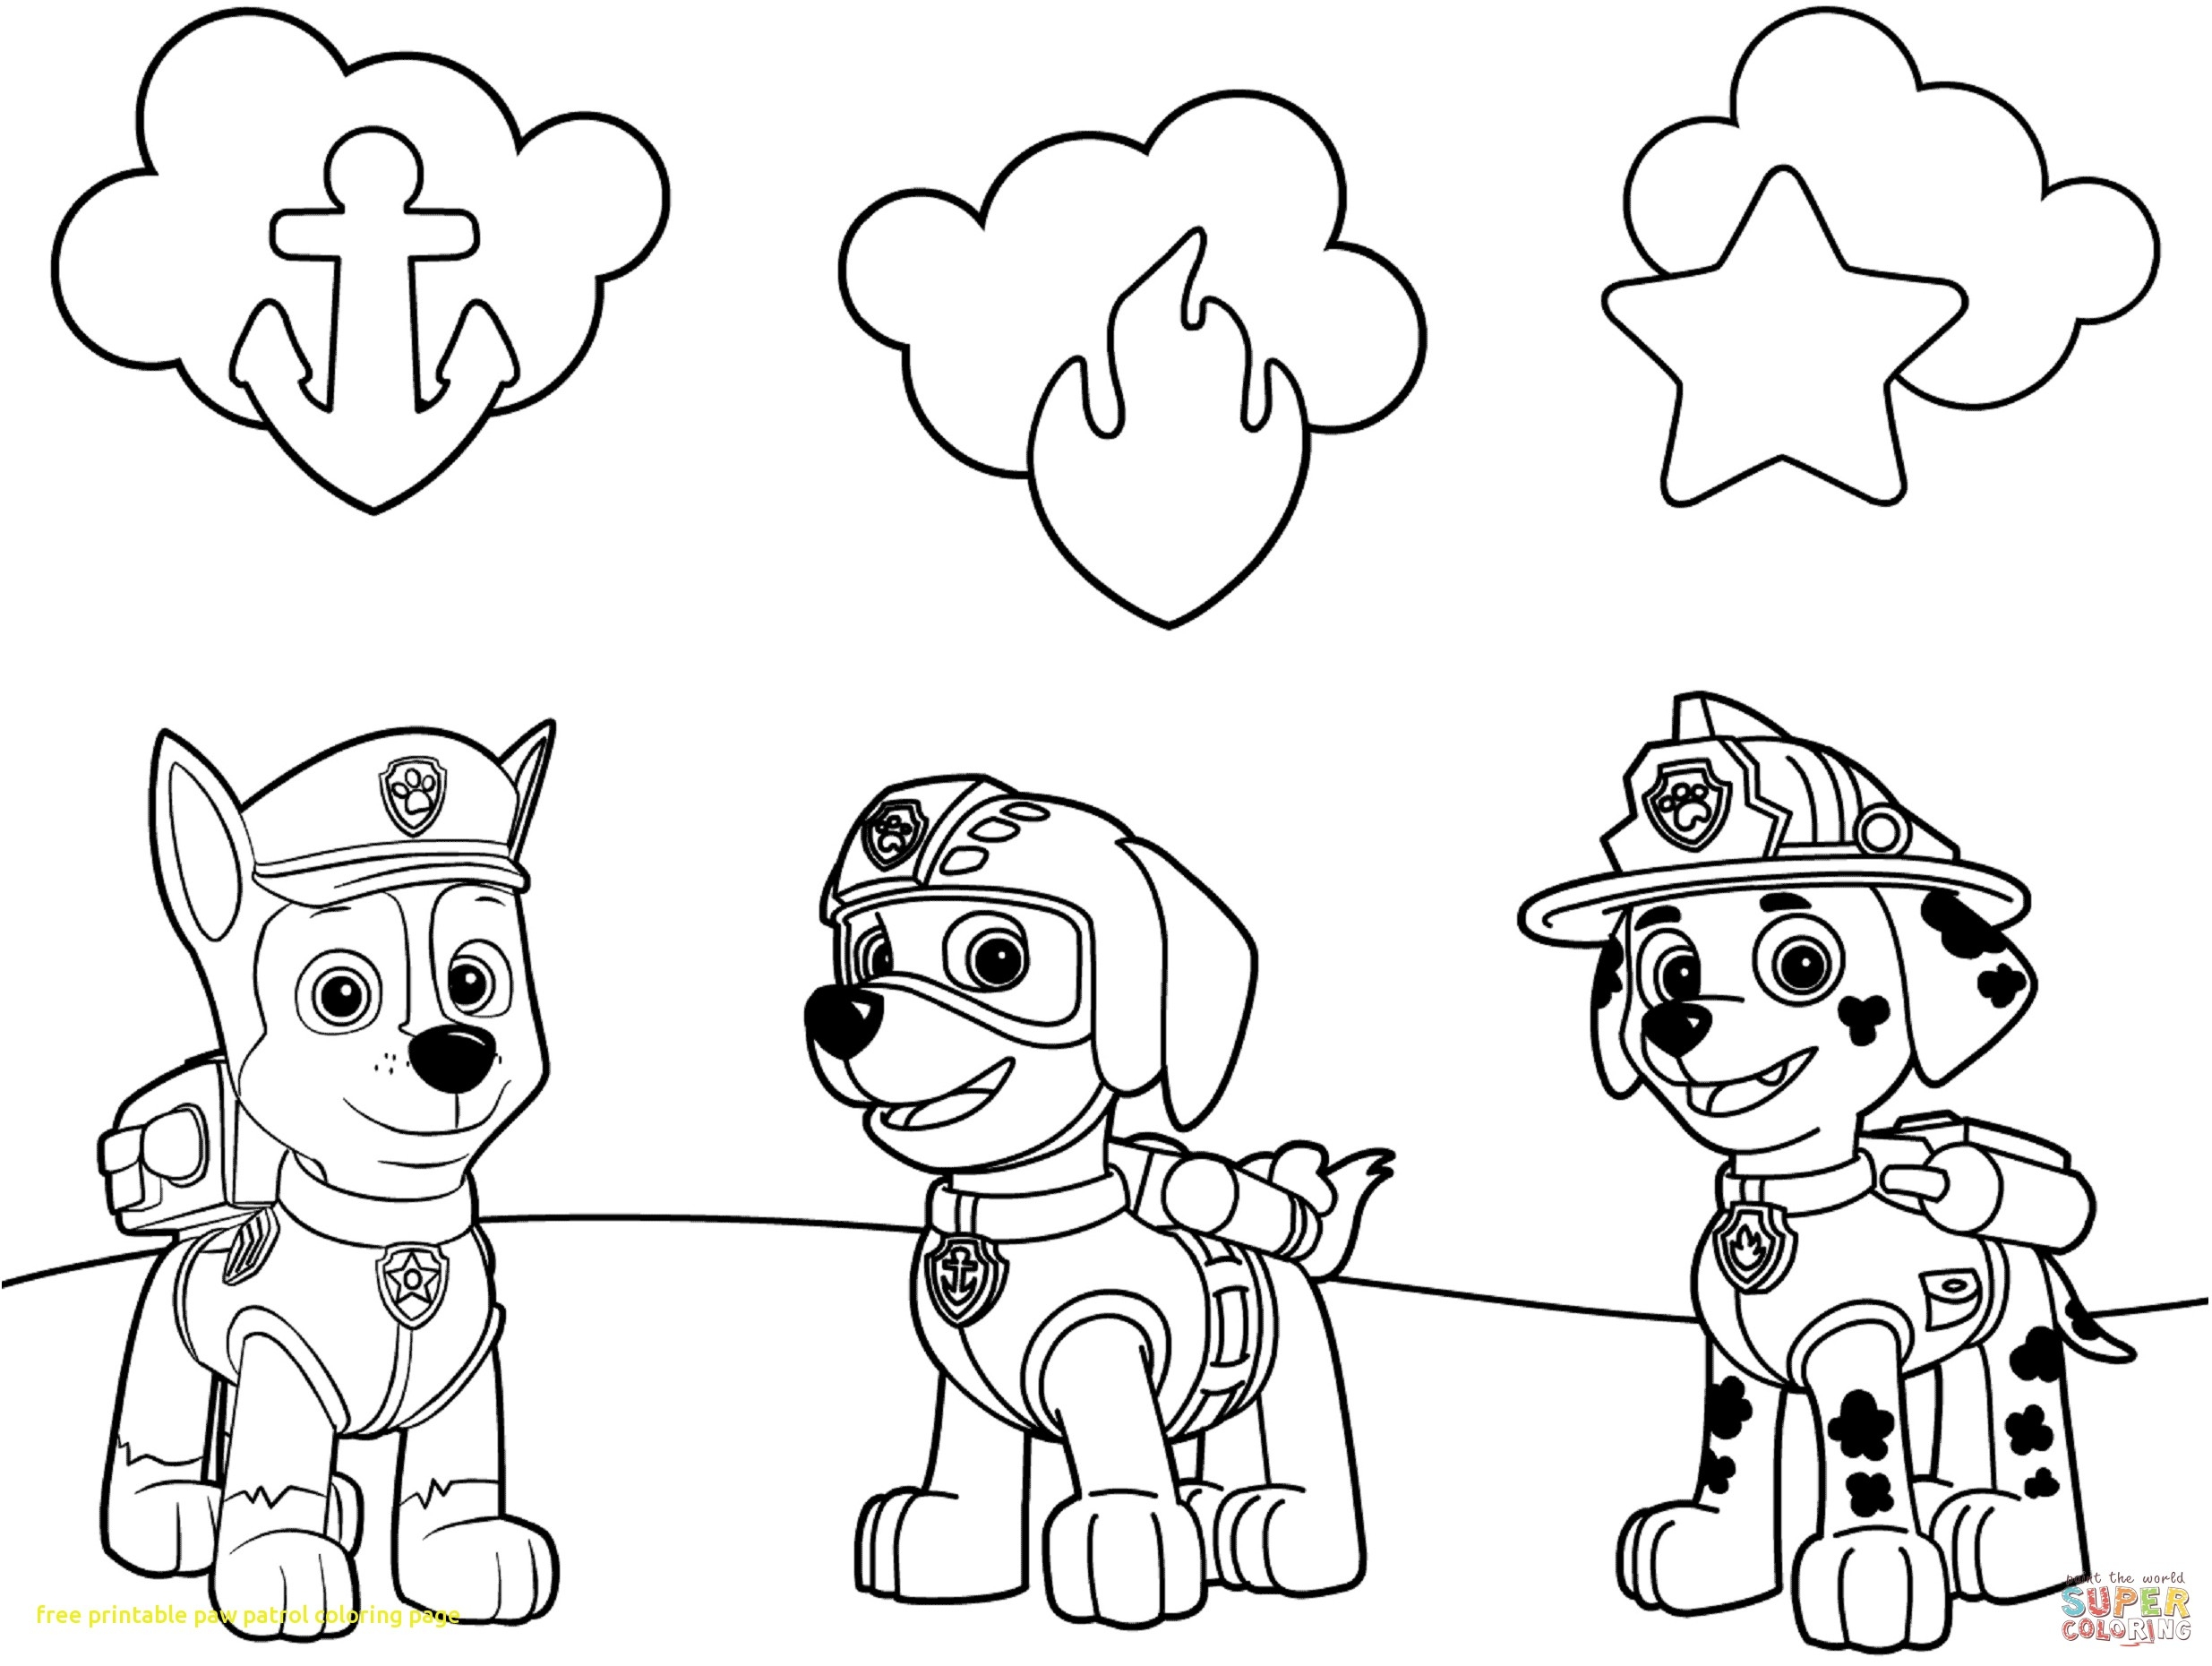 paw patrol for coloring marshall paw patrol coloring lesson kids coloring page paw patrol for coloring